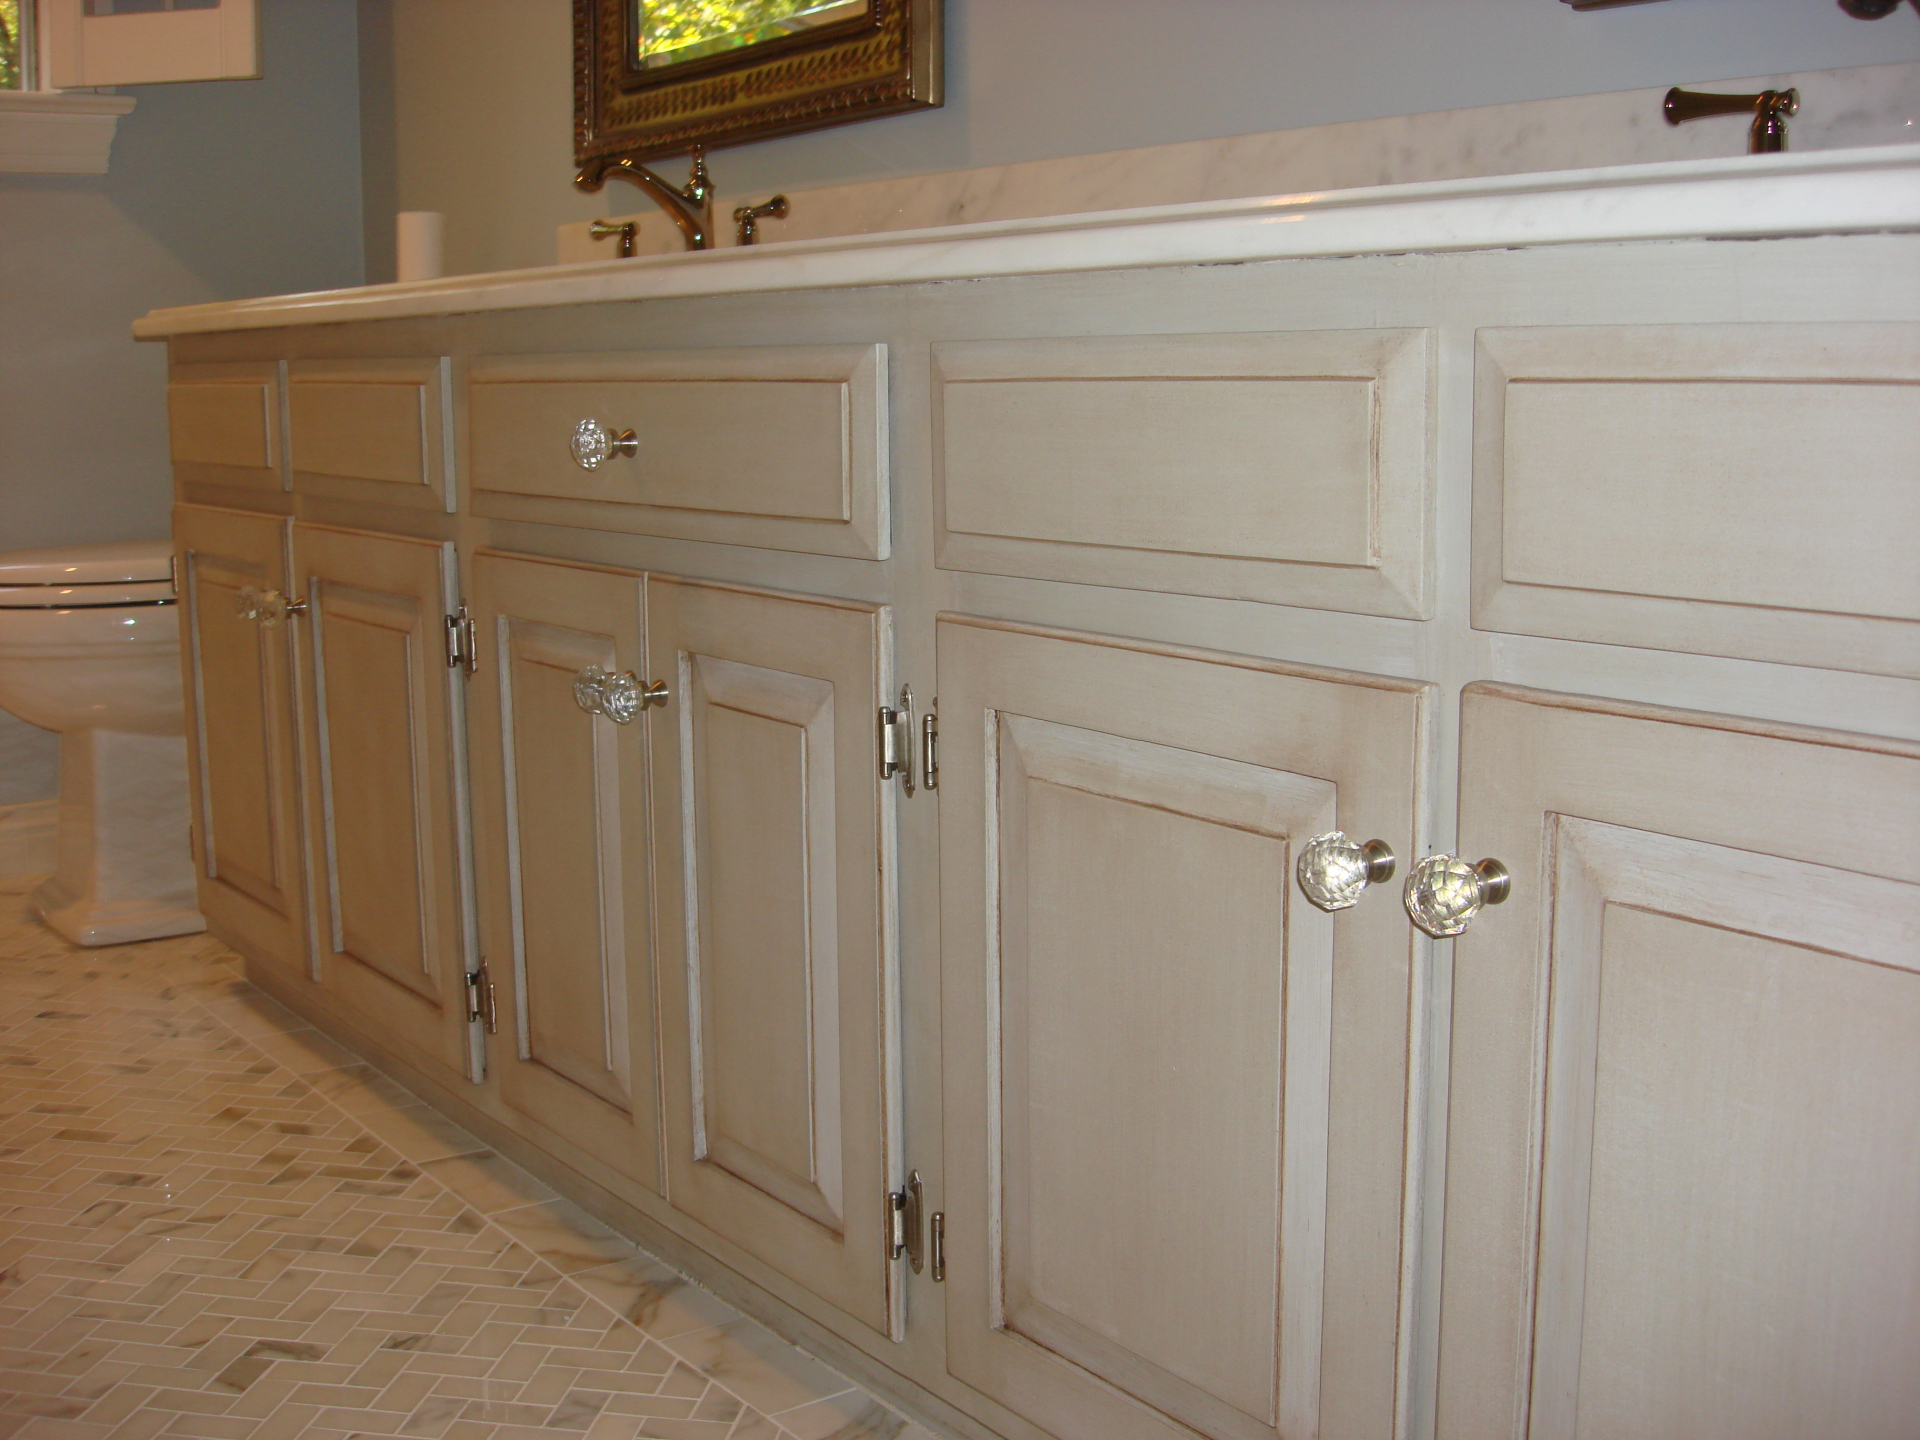 painted and glazed cabinets, bathroom vanity, remodel